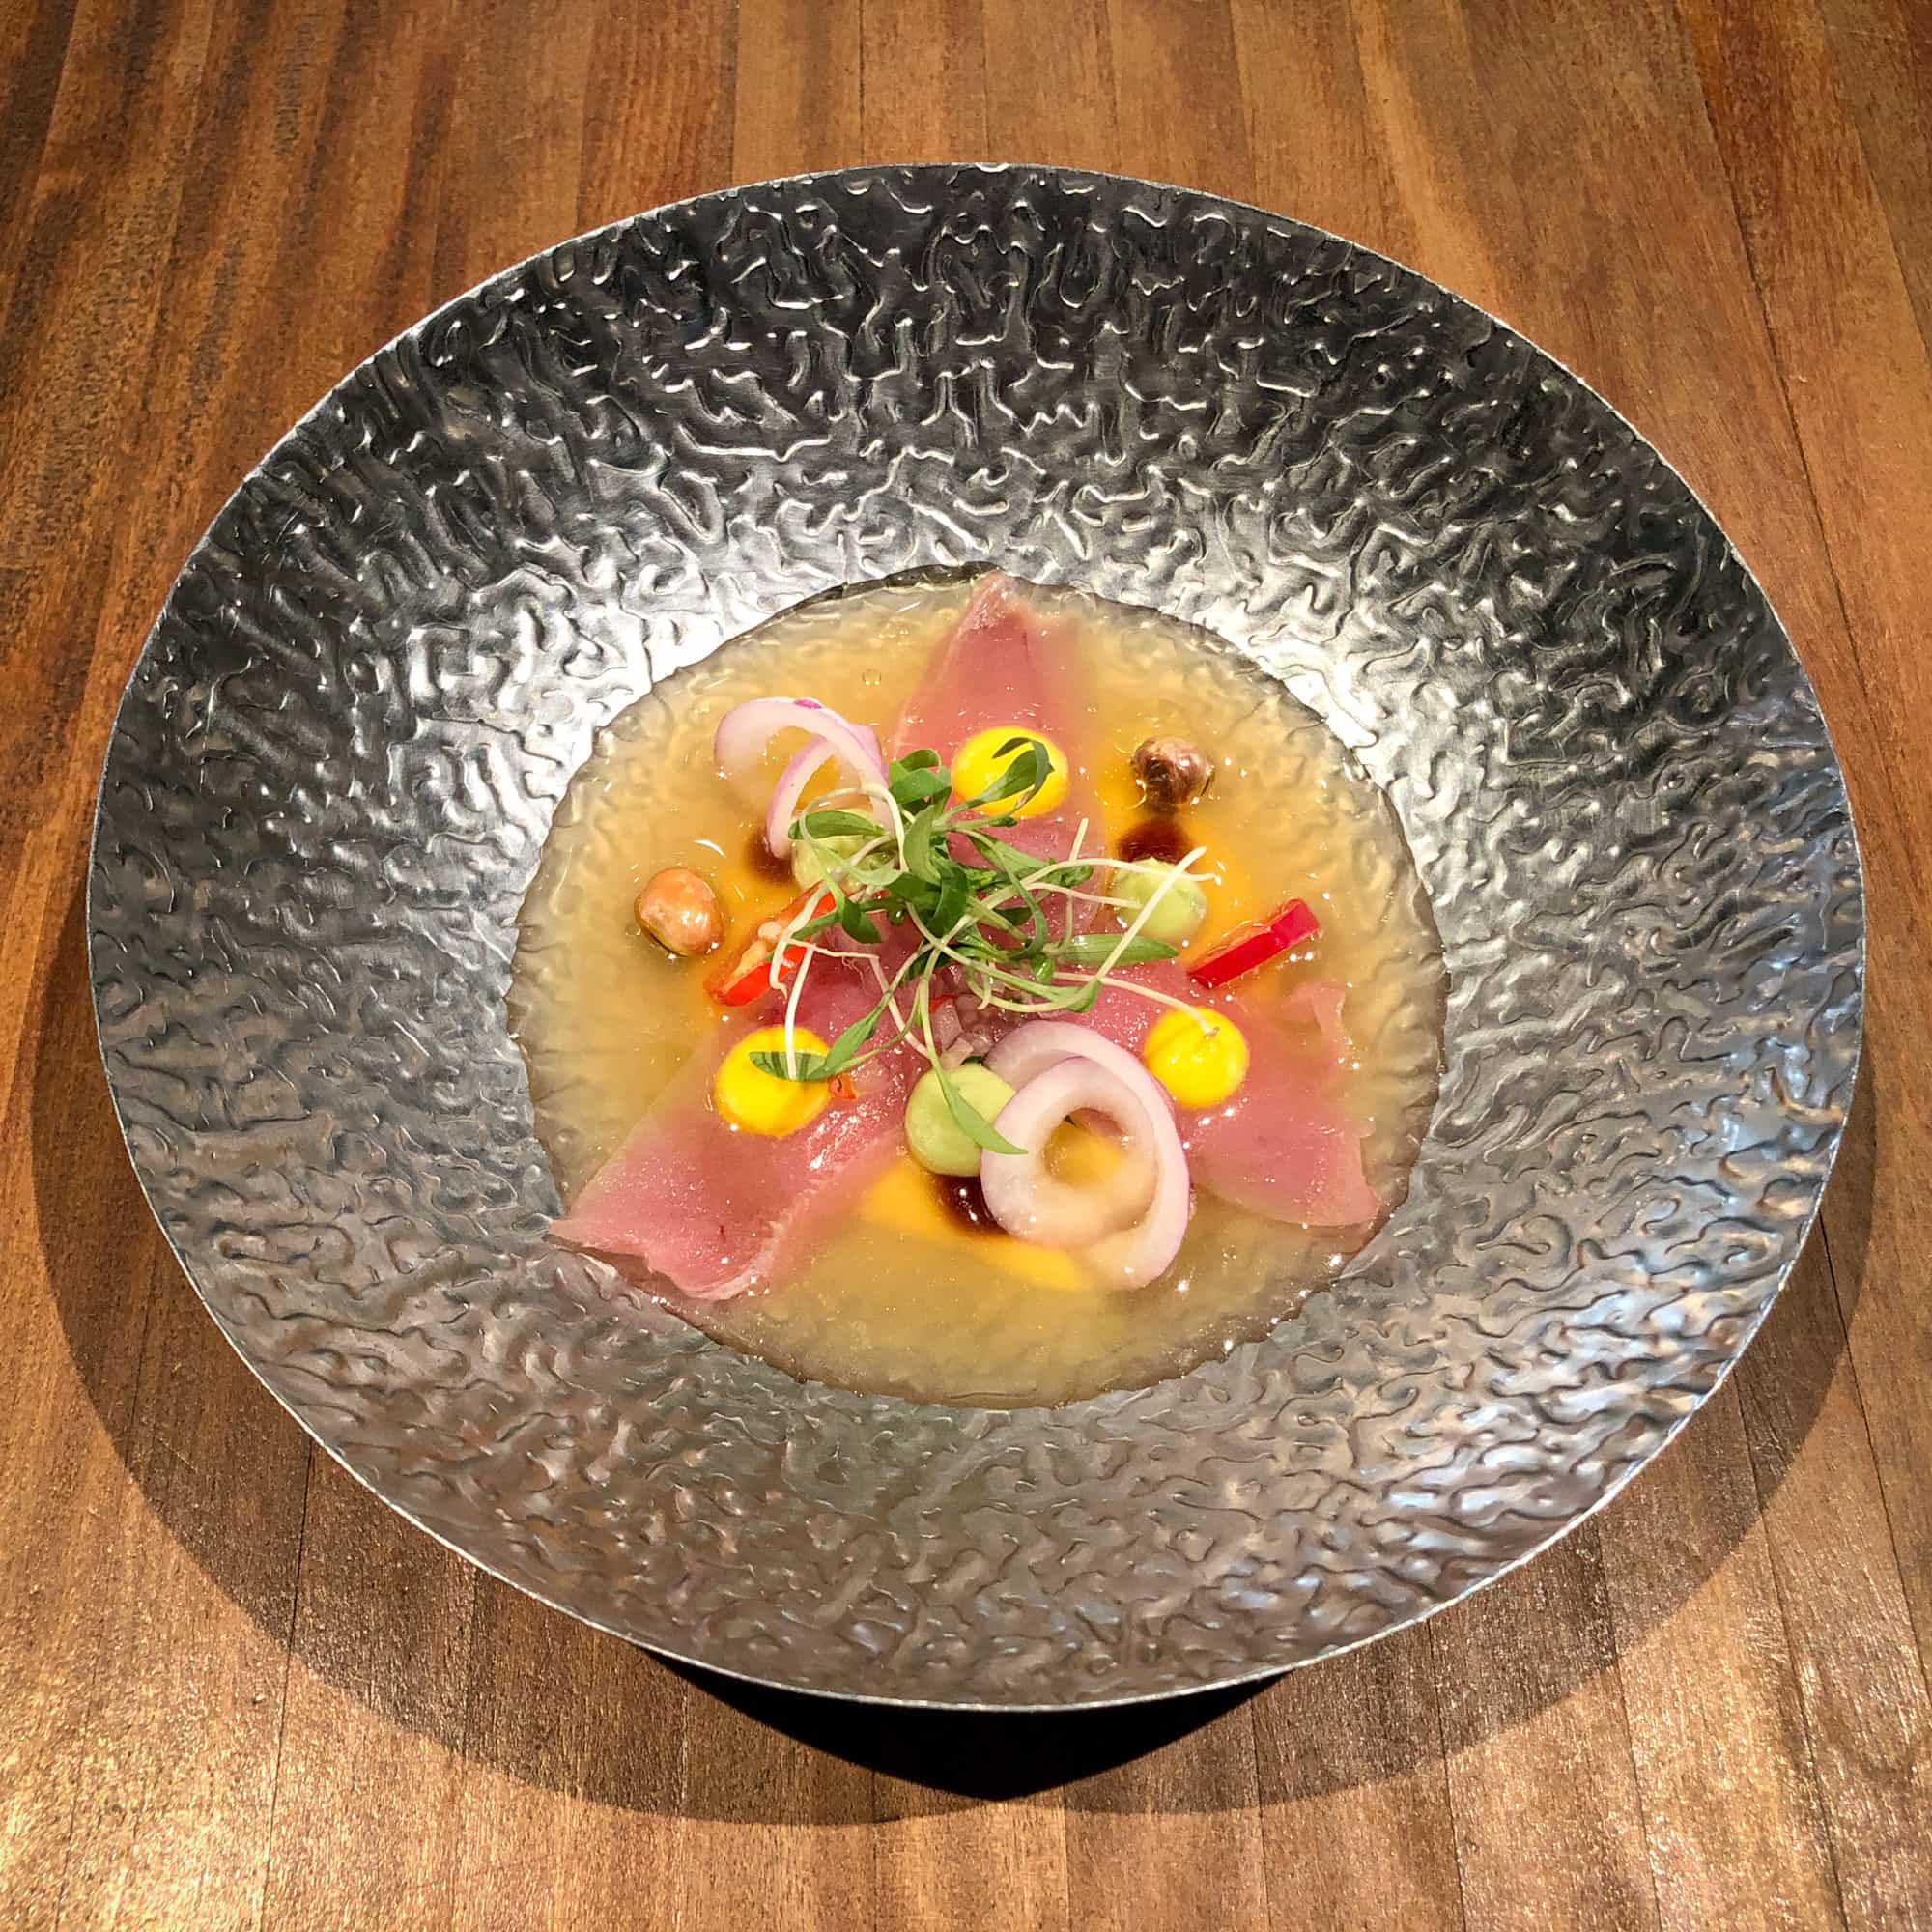 Ceviche at Maido, one of the best restaurants in Latin America